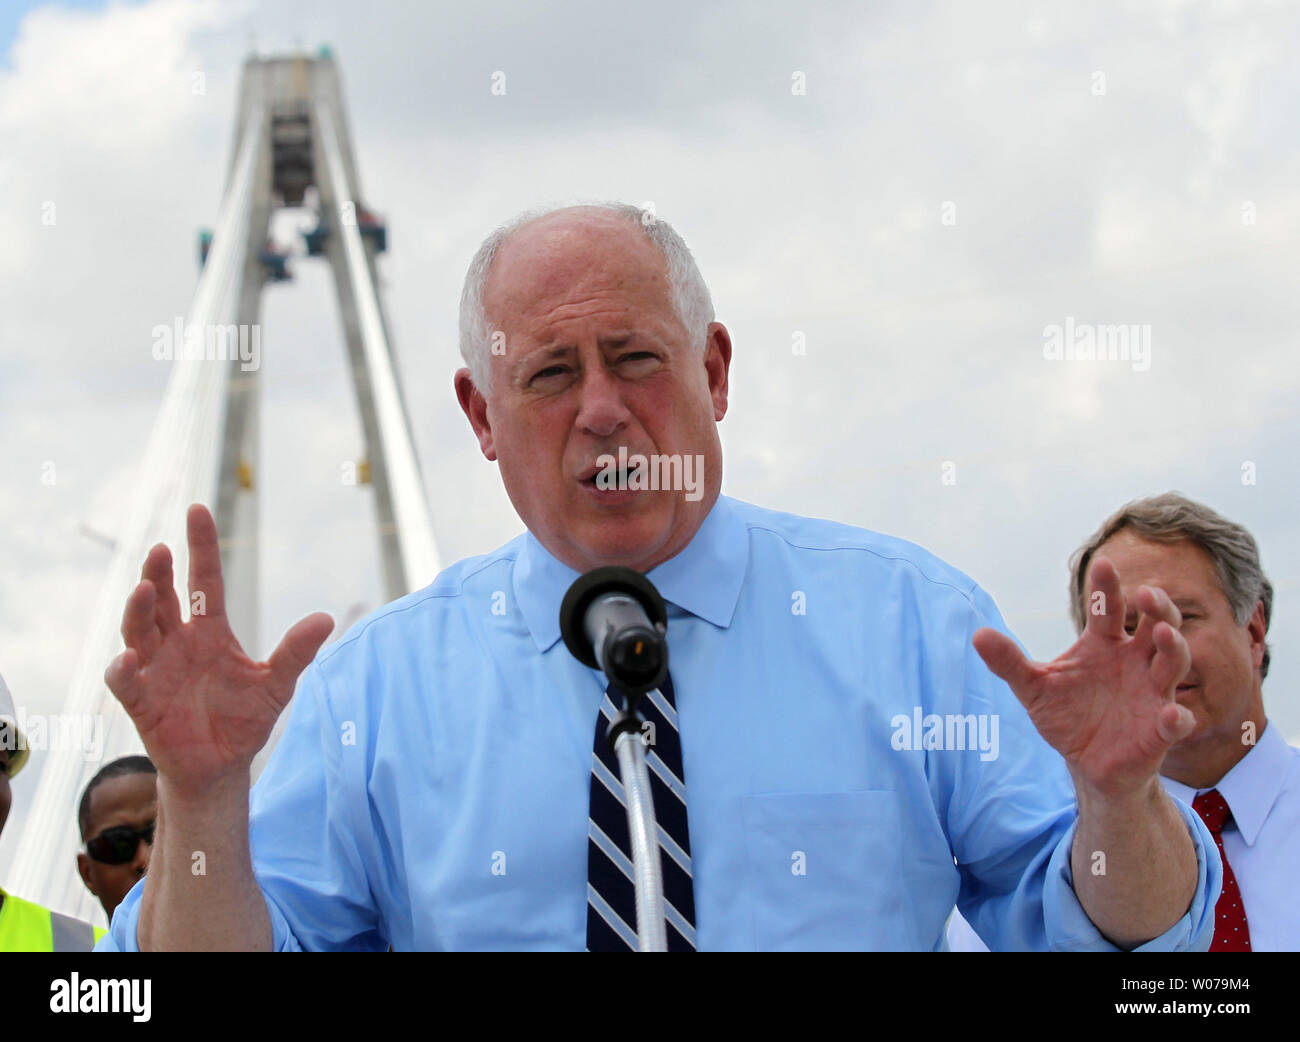 With a span of the new Stan Musial Veterans Bridge exposed, Illinois Governor Pat Quinn joins  workers to talk about the nearly completed bridge as preperations are being made for the final section in Brooklyn, Illinois on July 15, 2013. The bridge will connect Illinois to Missouri and has created 3,400 jobs. The bridge should be open by March 2014.    UPI/Bill Greenblatt Stock Photo